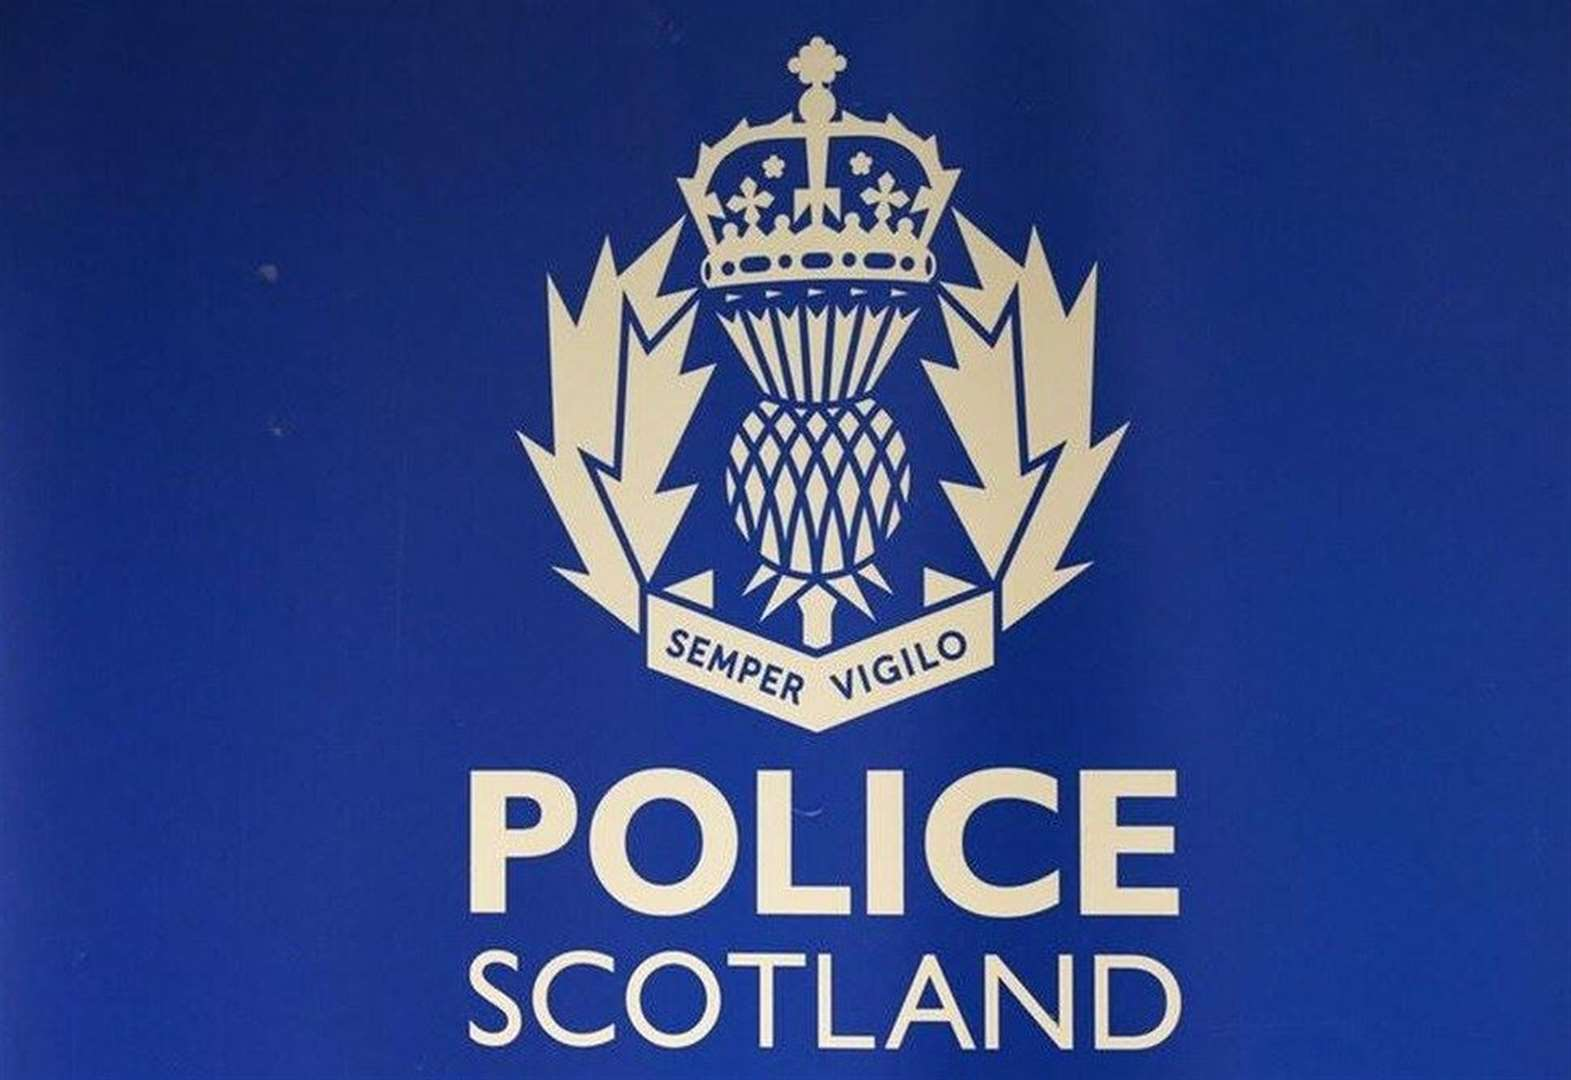 Police appeal for information after a woman was robbed on Ness Walk in Inverness